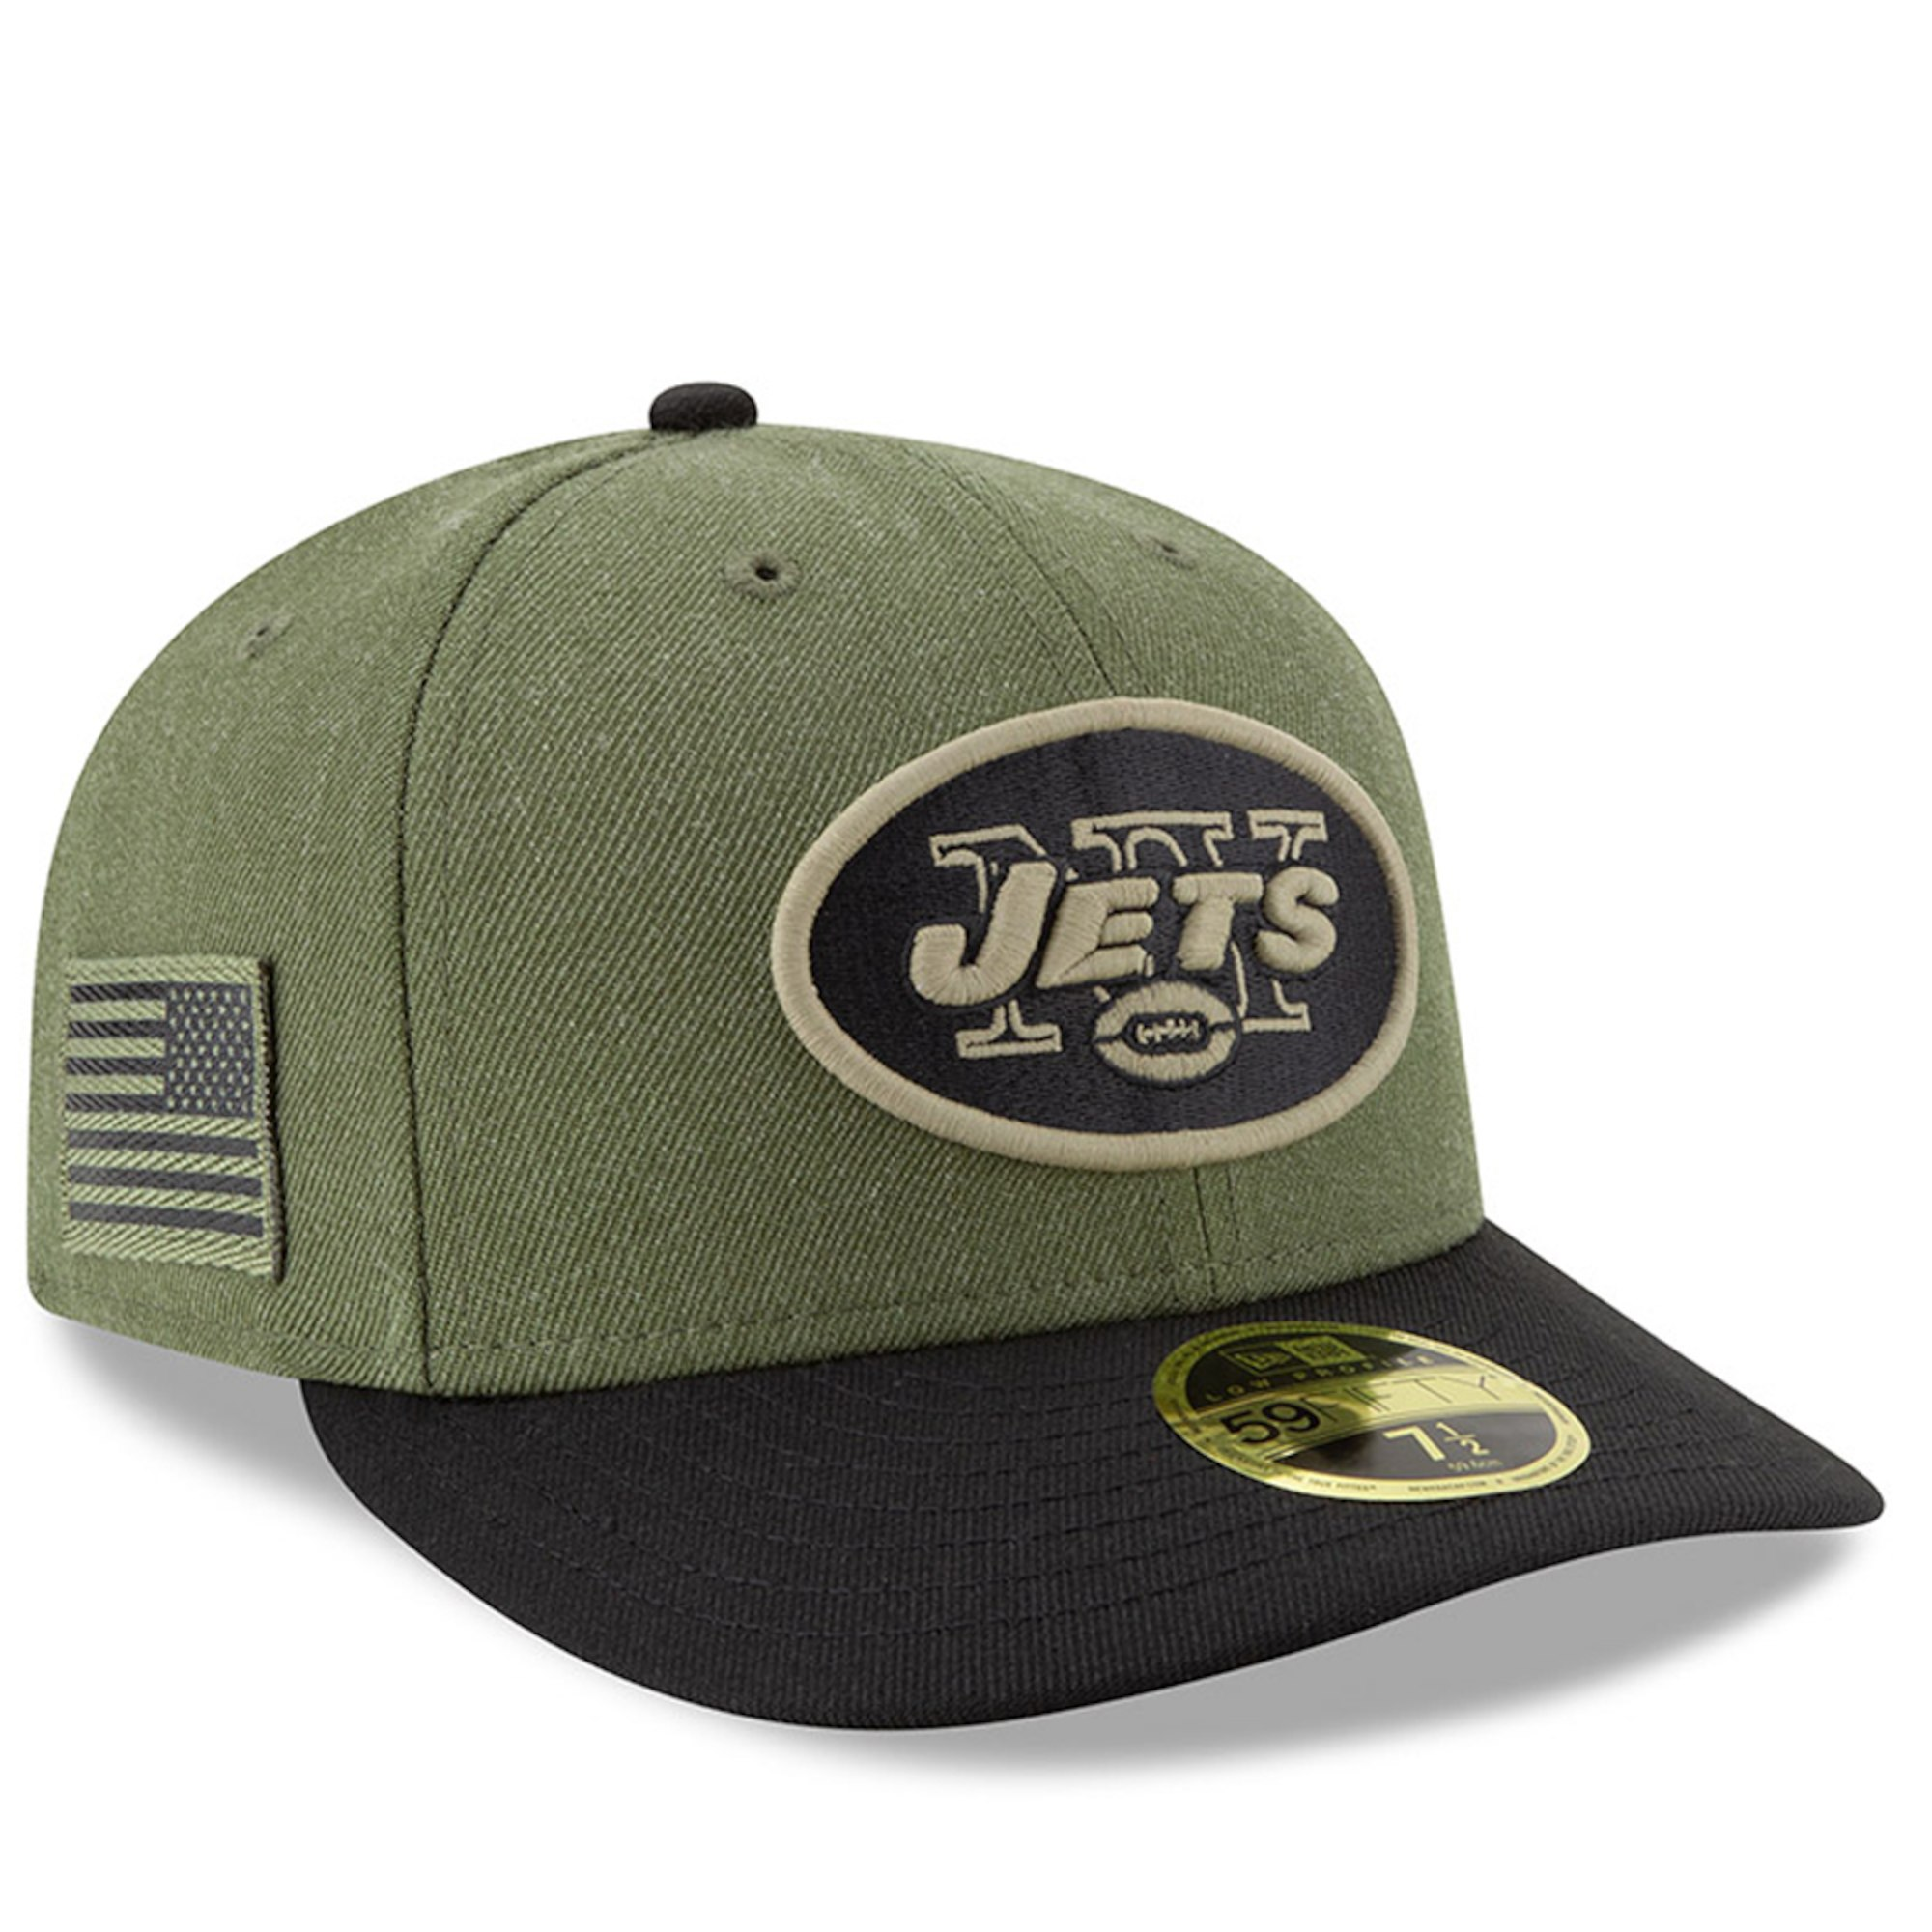 d3fd7ee3c51 Details about NEW ERA New York Jets Salute to Service 59FIFTY Fitted Low  Profile Hat Cap NFL